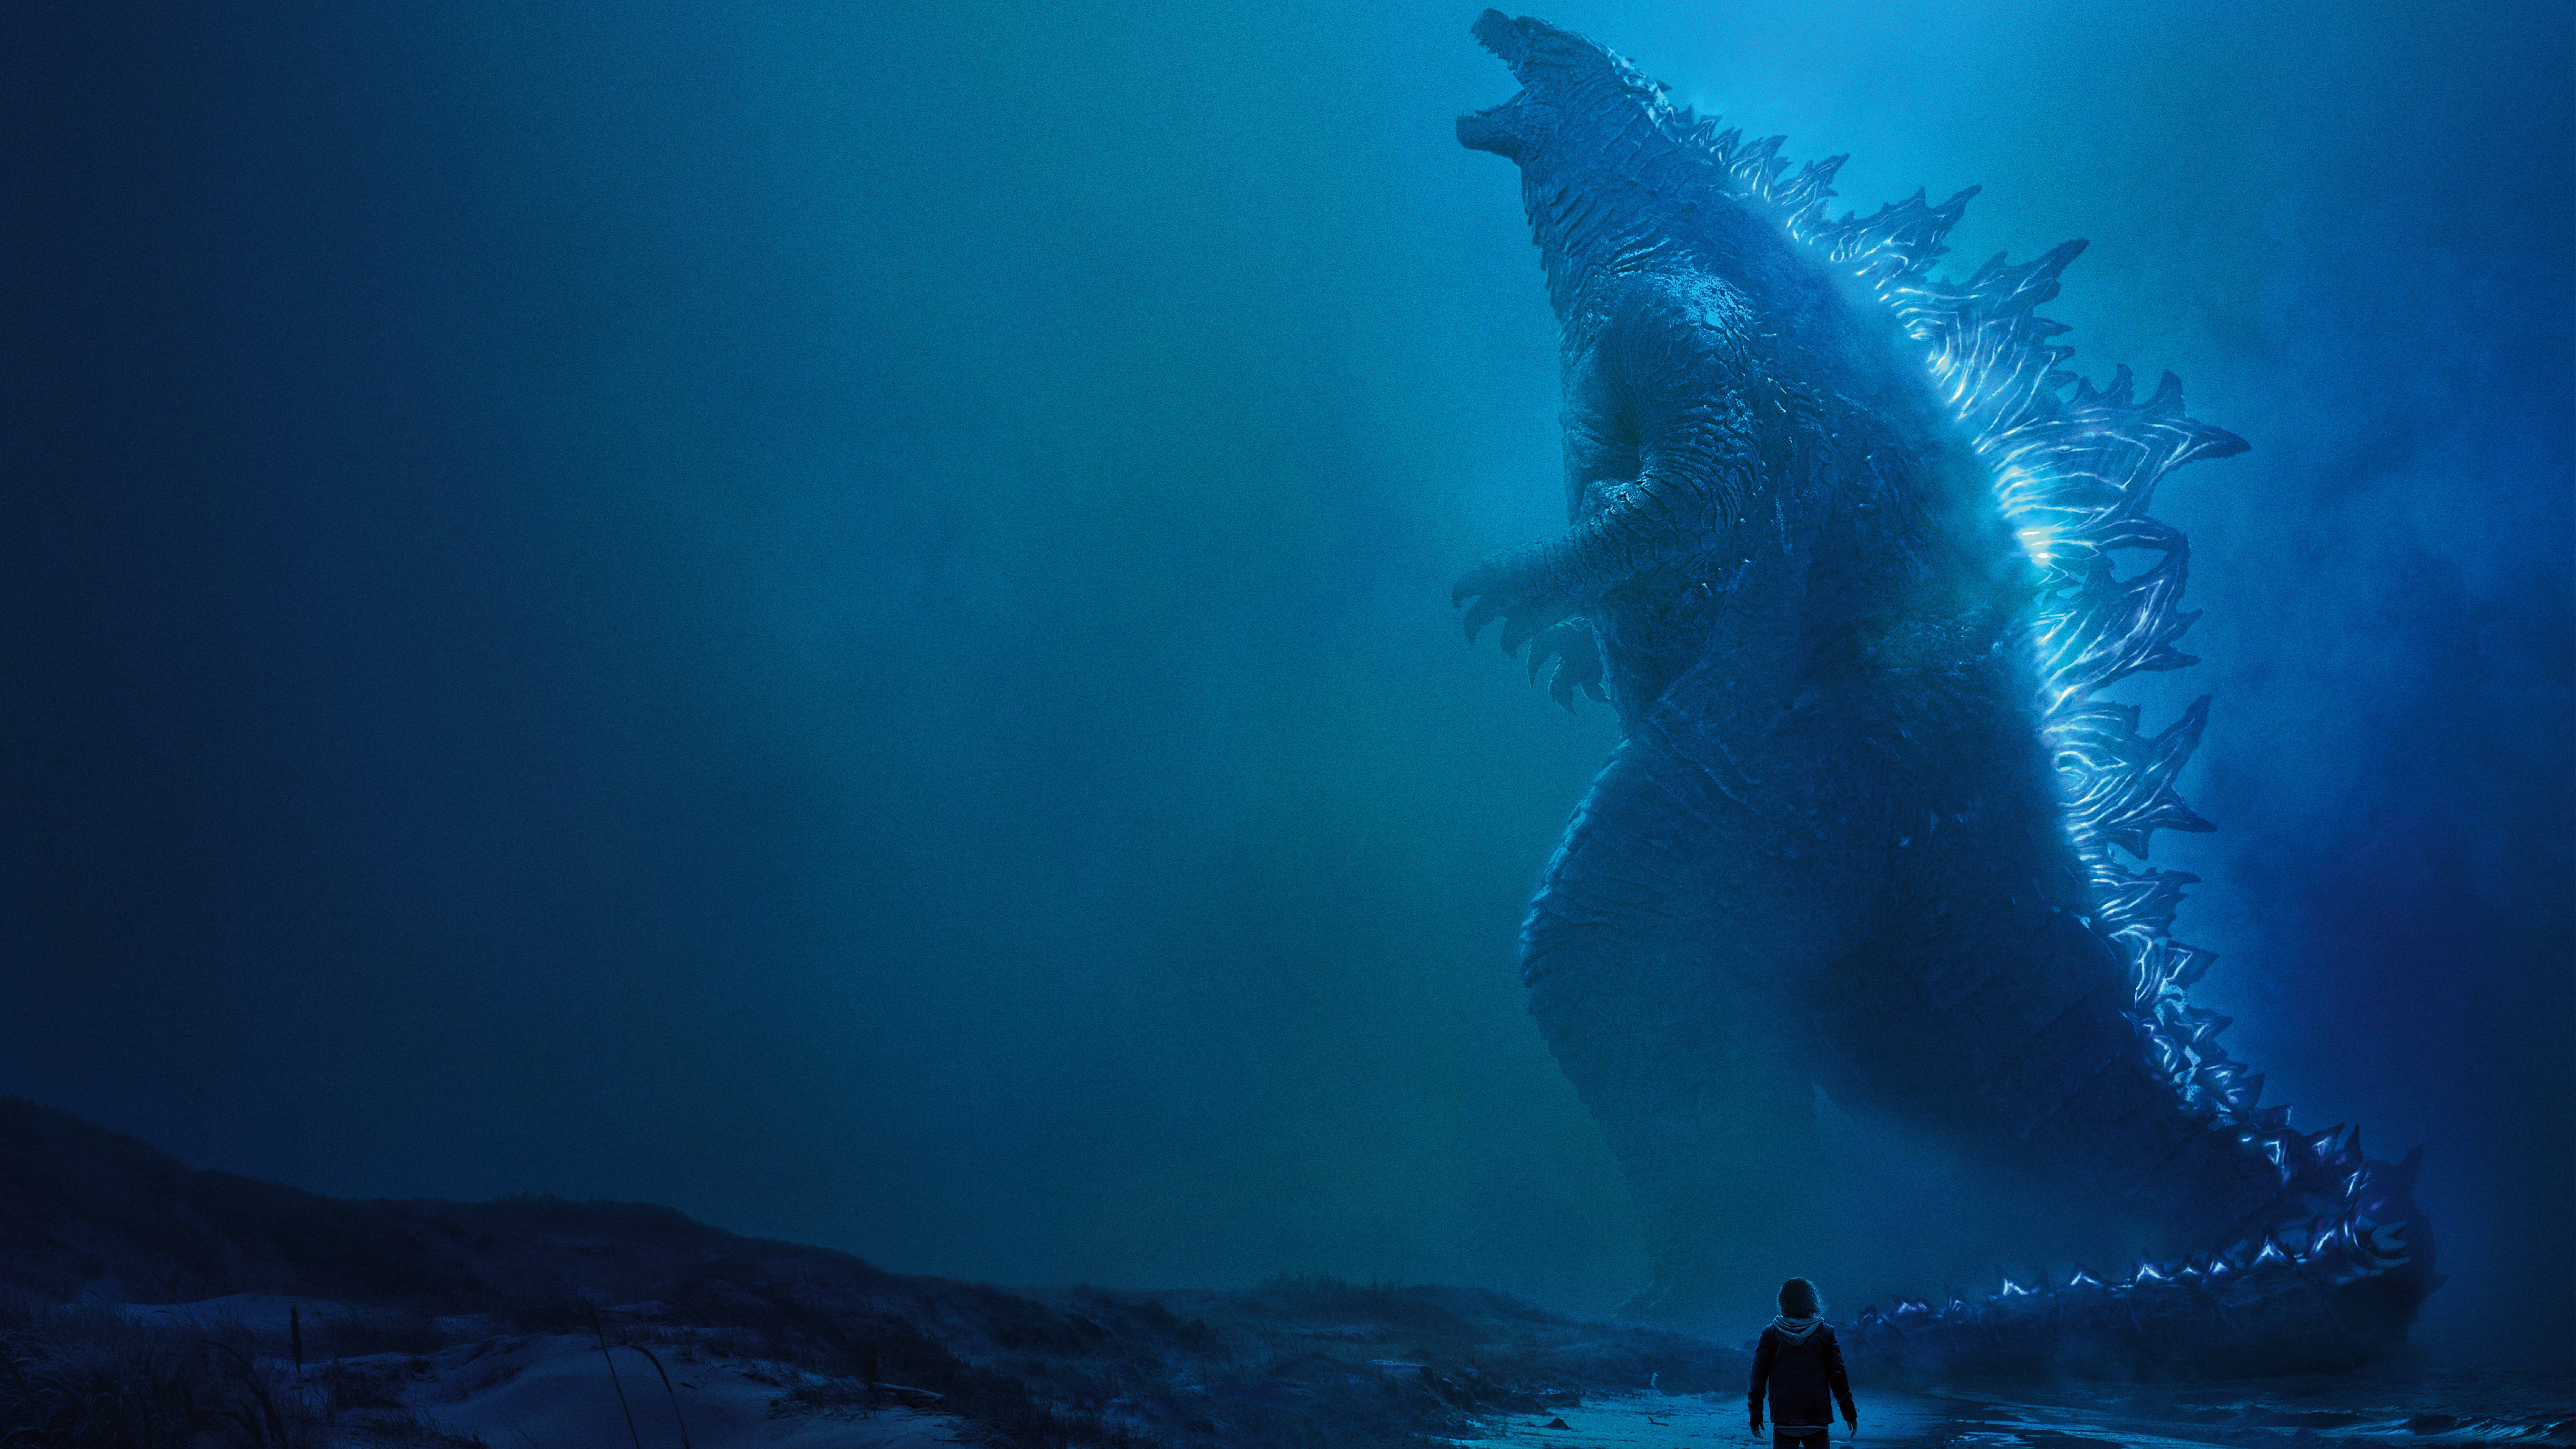 Godzilla King Of The Monsters 8k Hd Movies 4k Wallpapers Images